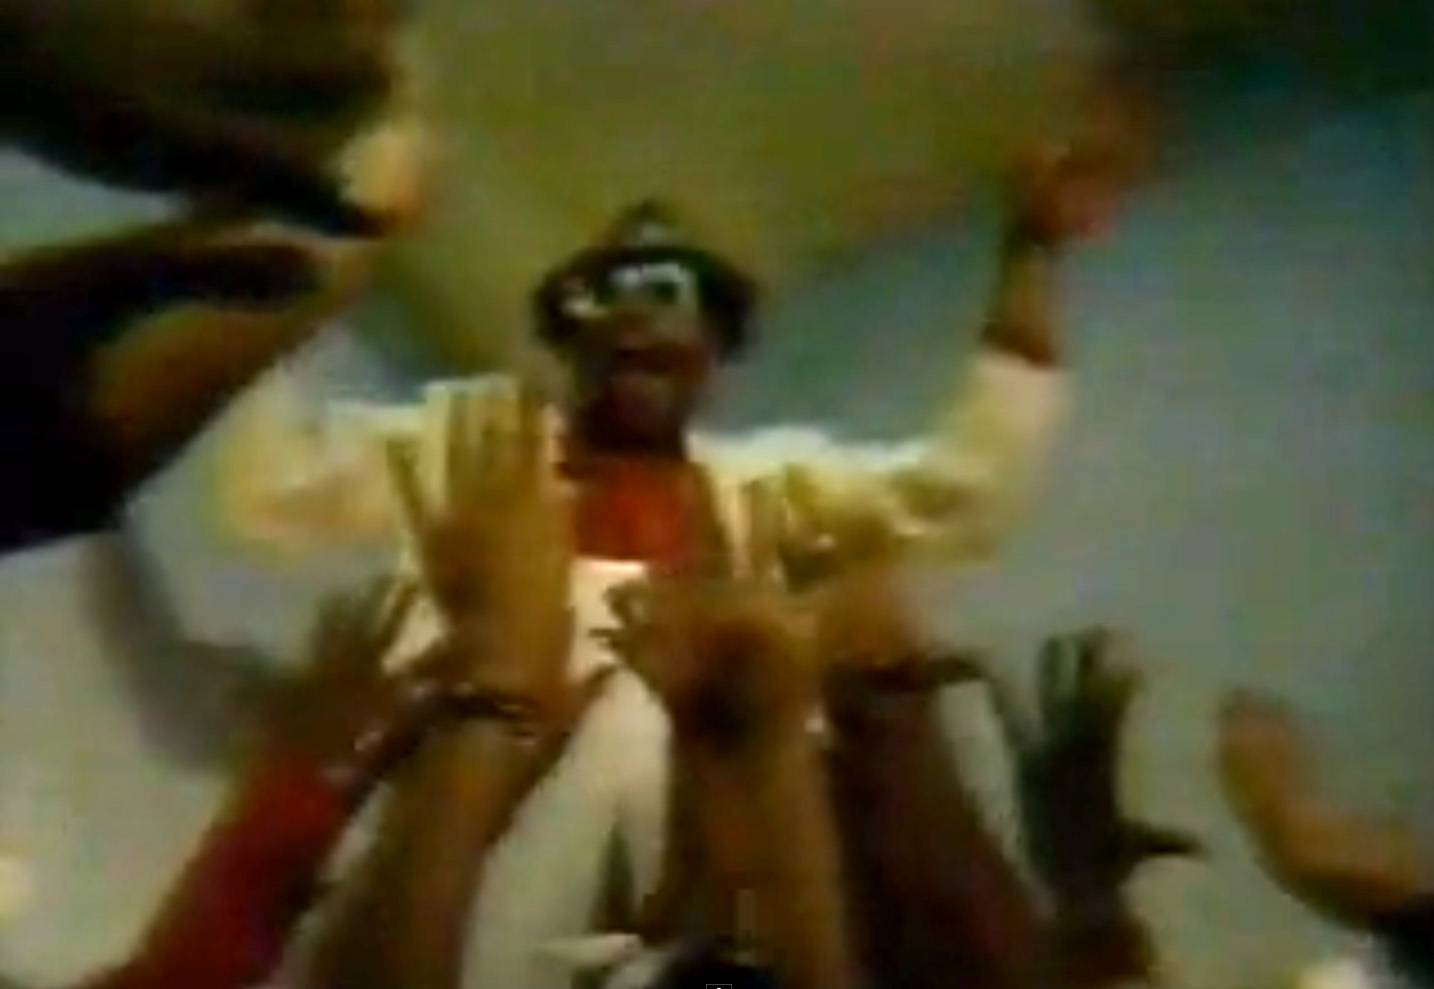 """Grandmaster Melle Mel: """"White Lines"""" - While still a student at New York University, Leefilmed this unofficial video for rap pioneer Melle Mel's1983 anti-cocaine classic """"White Lines."""" Amidst the modern dancers kicking, spinning and sniffing white lines, actor Laurence Fishburne stars as the drug dealer supplying the powder.  (Photo: Sugar Hill Records)"""